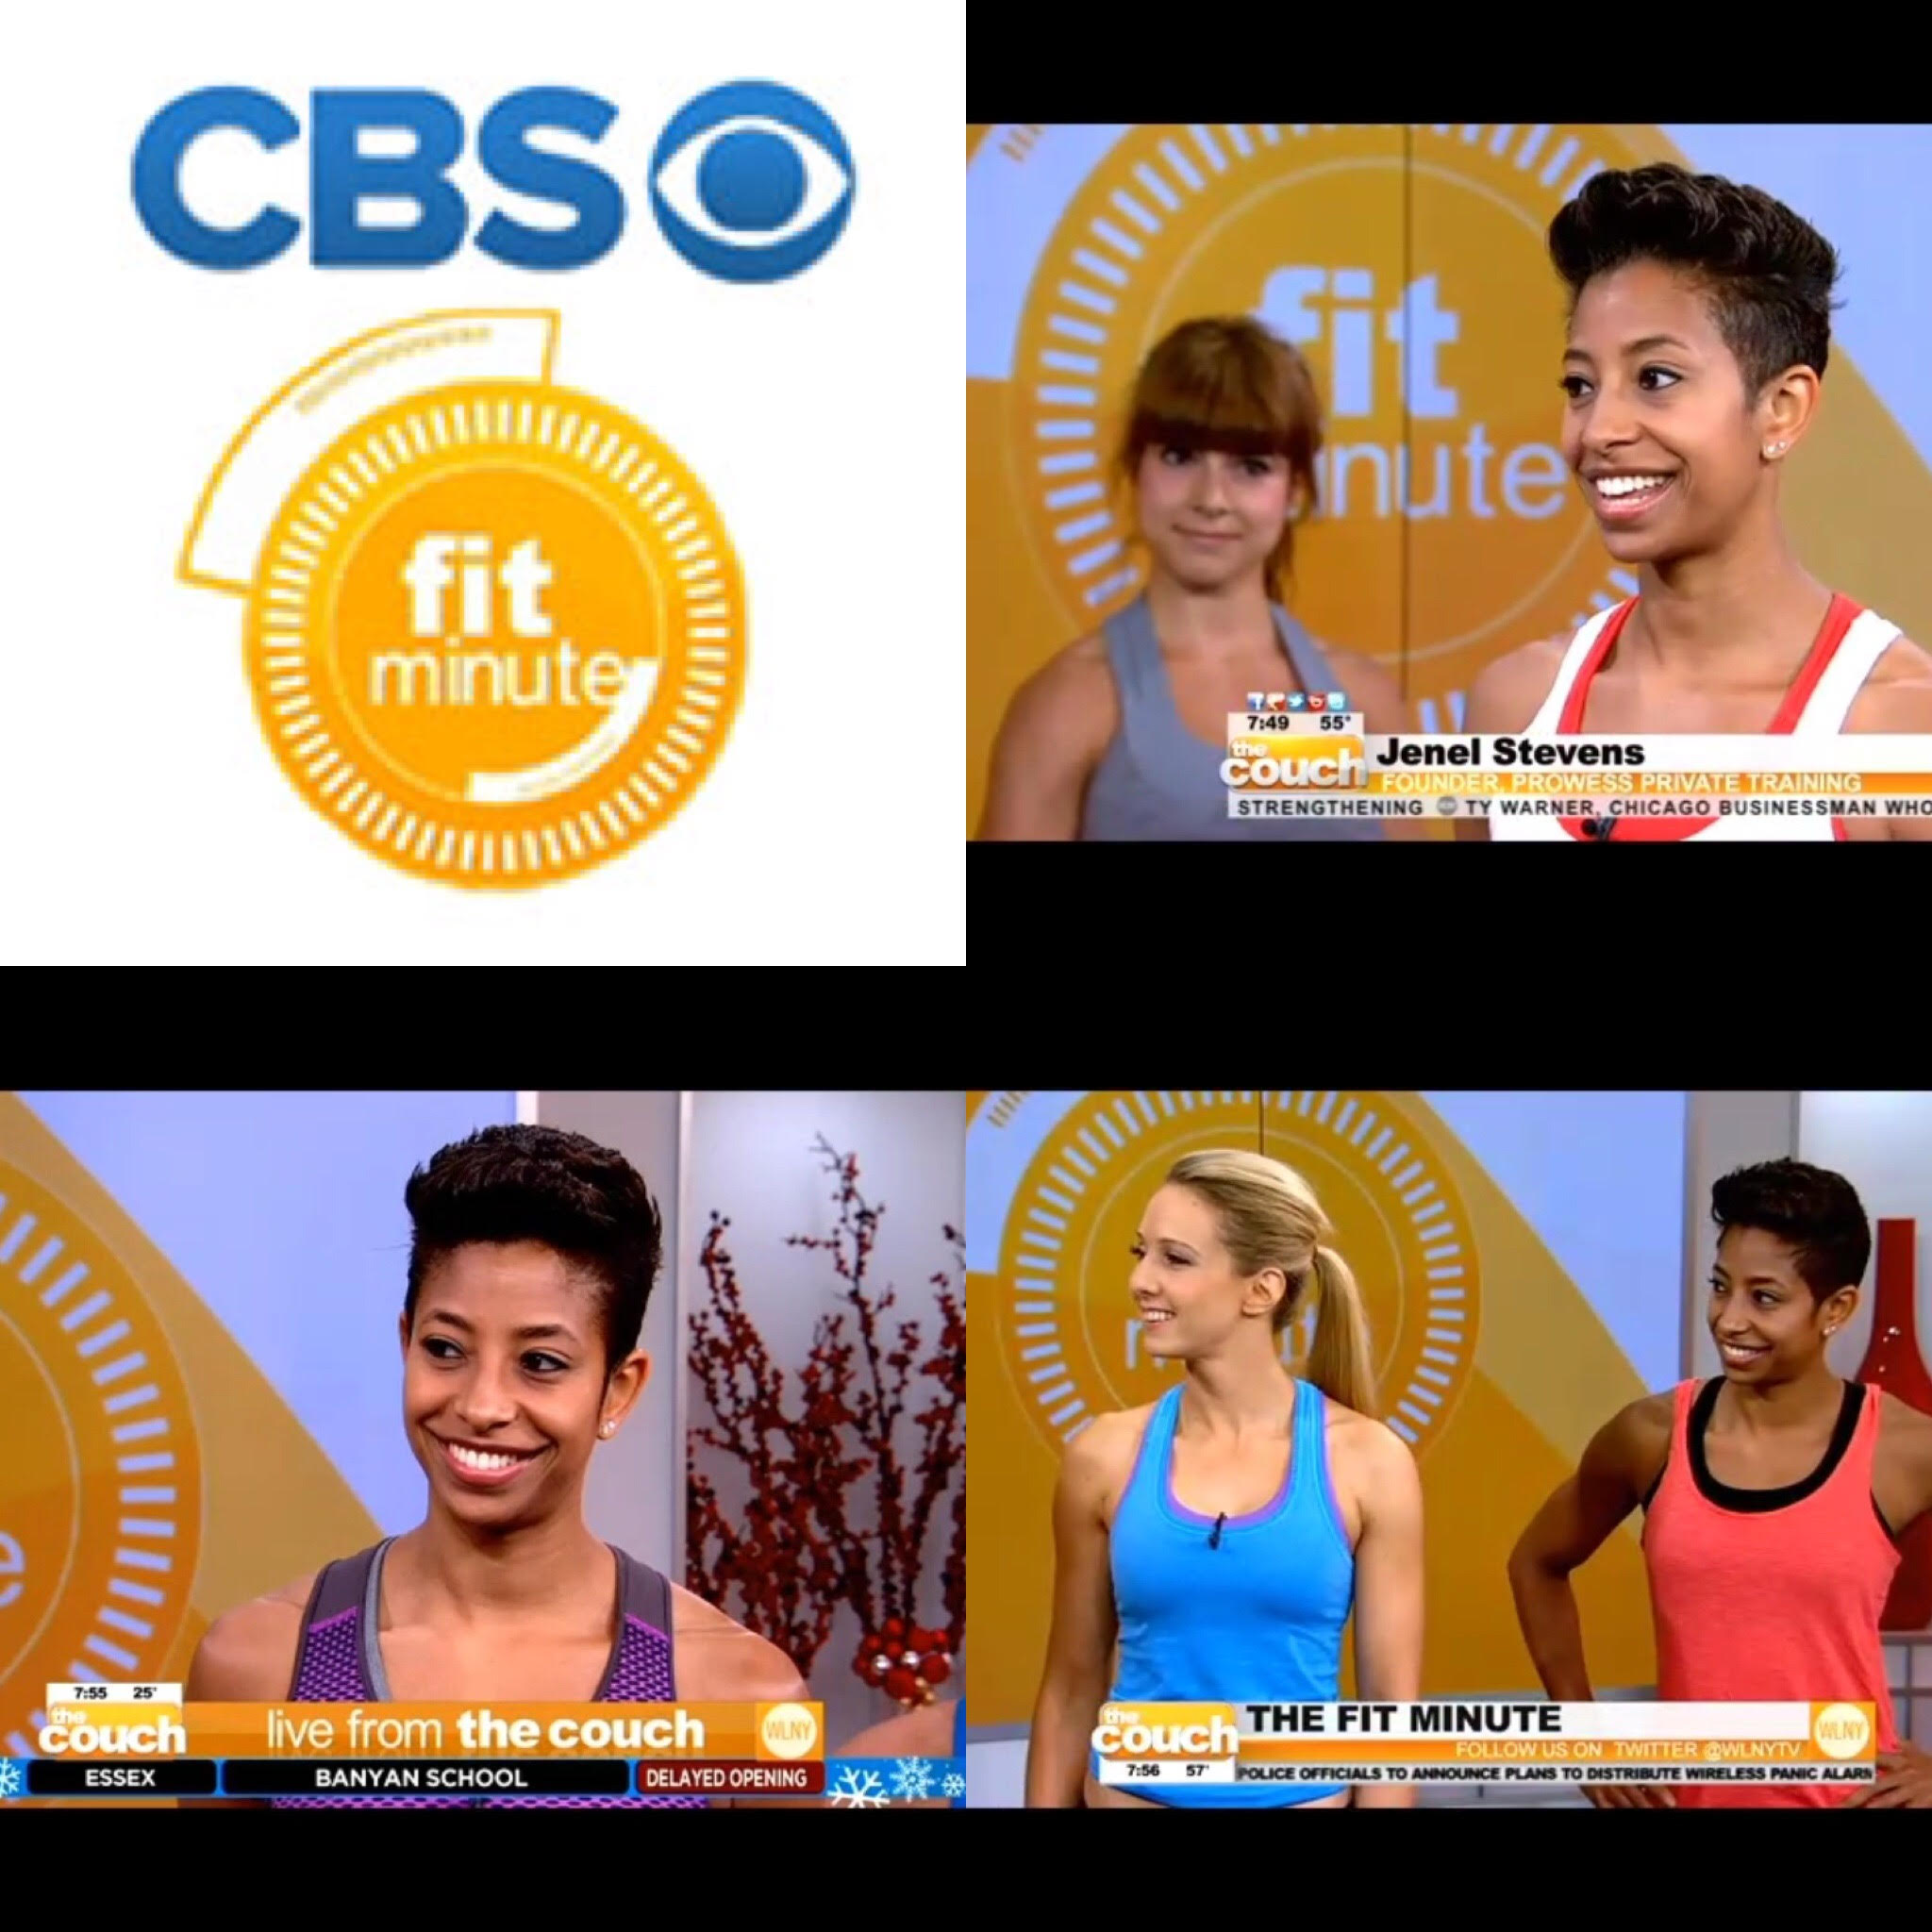 CBS fit minute pic